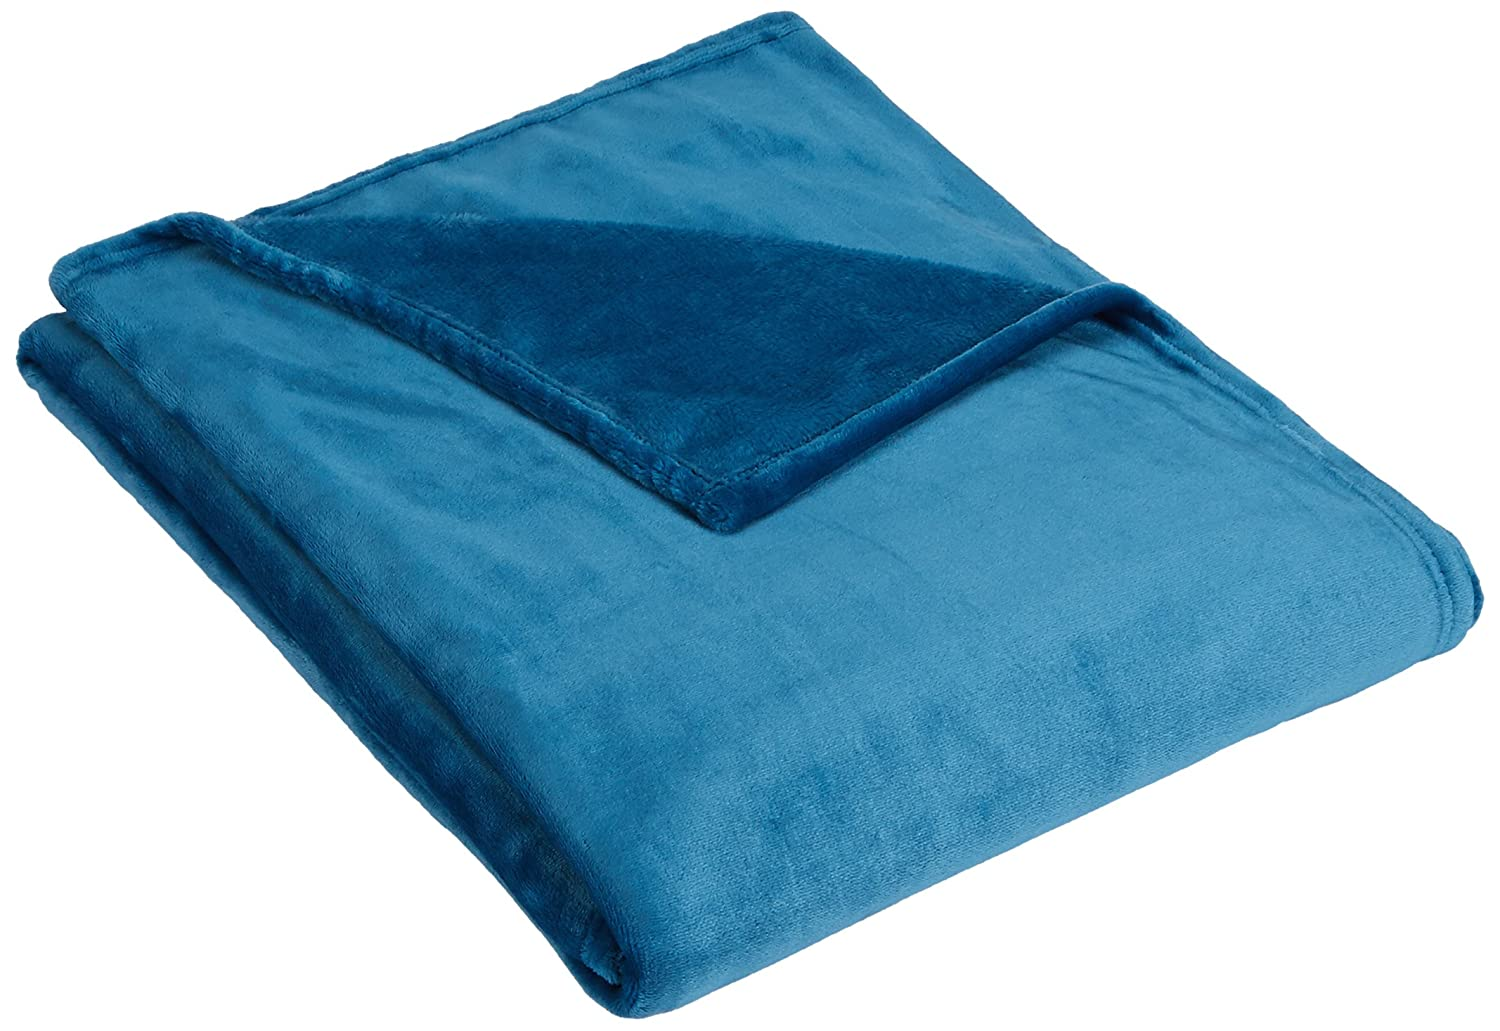 Pinzon Velvet Plush Throw Blanket, Teal